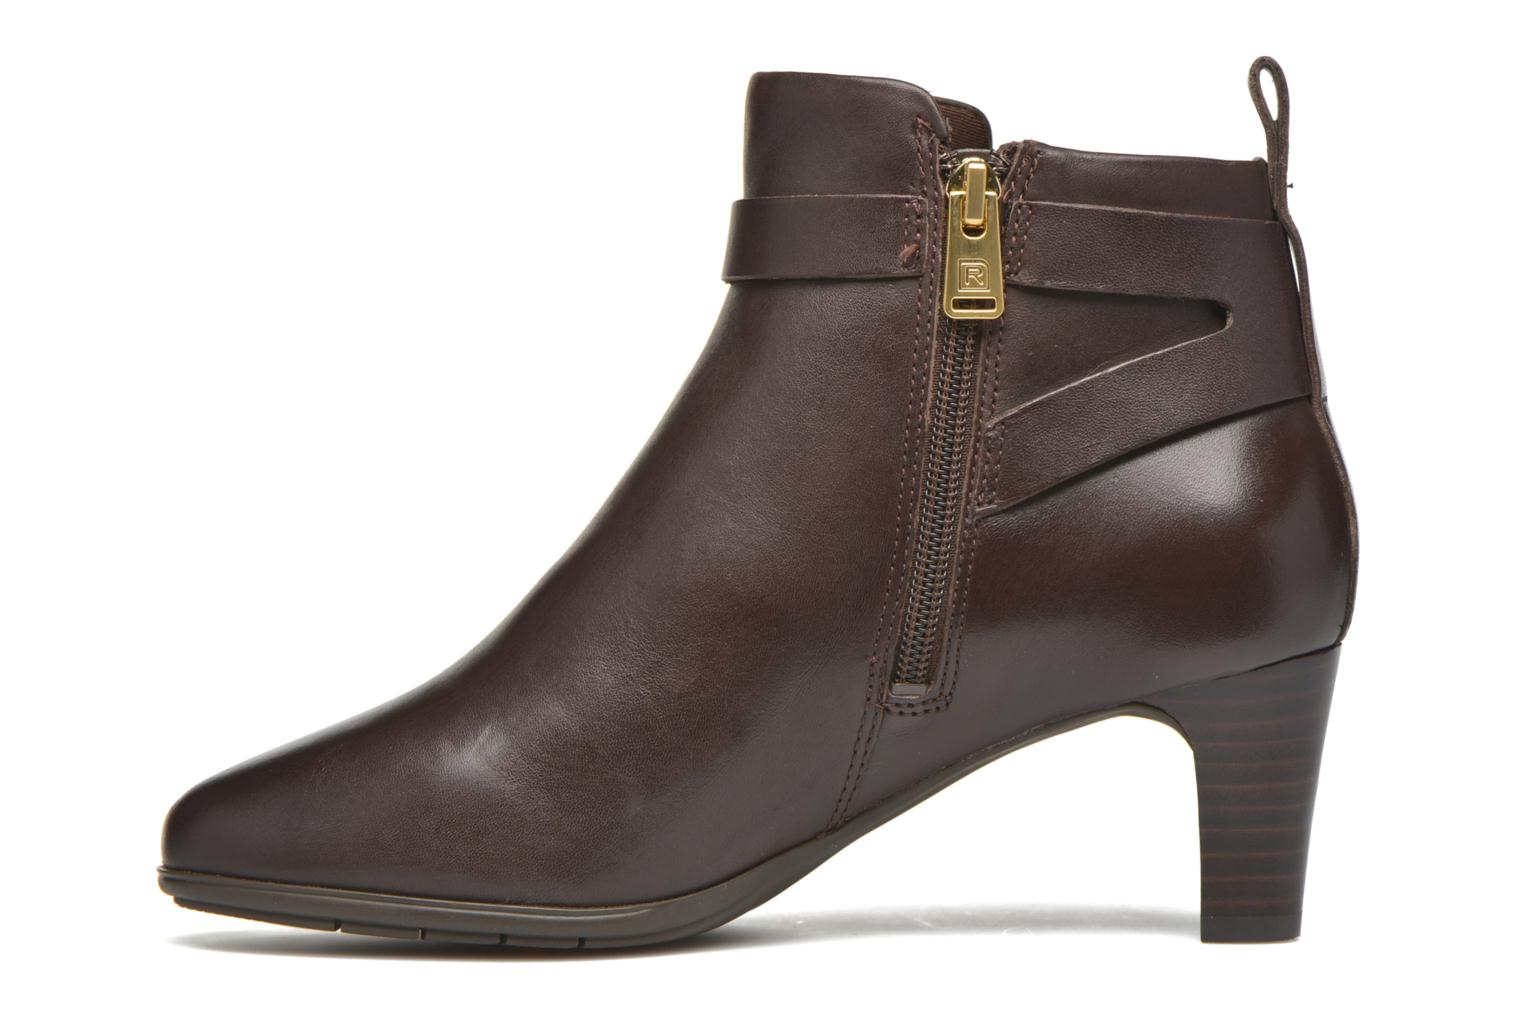 Bottines et boots Rockport Melora Strap Bootie Marron vue face